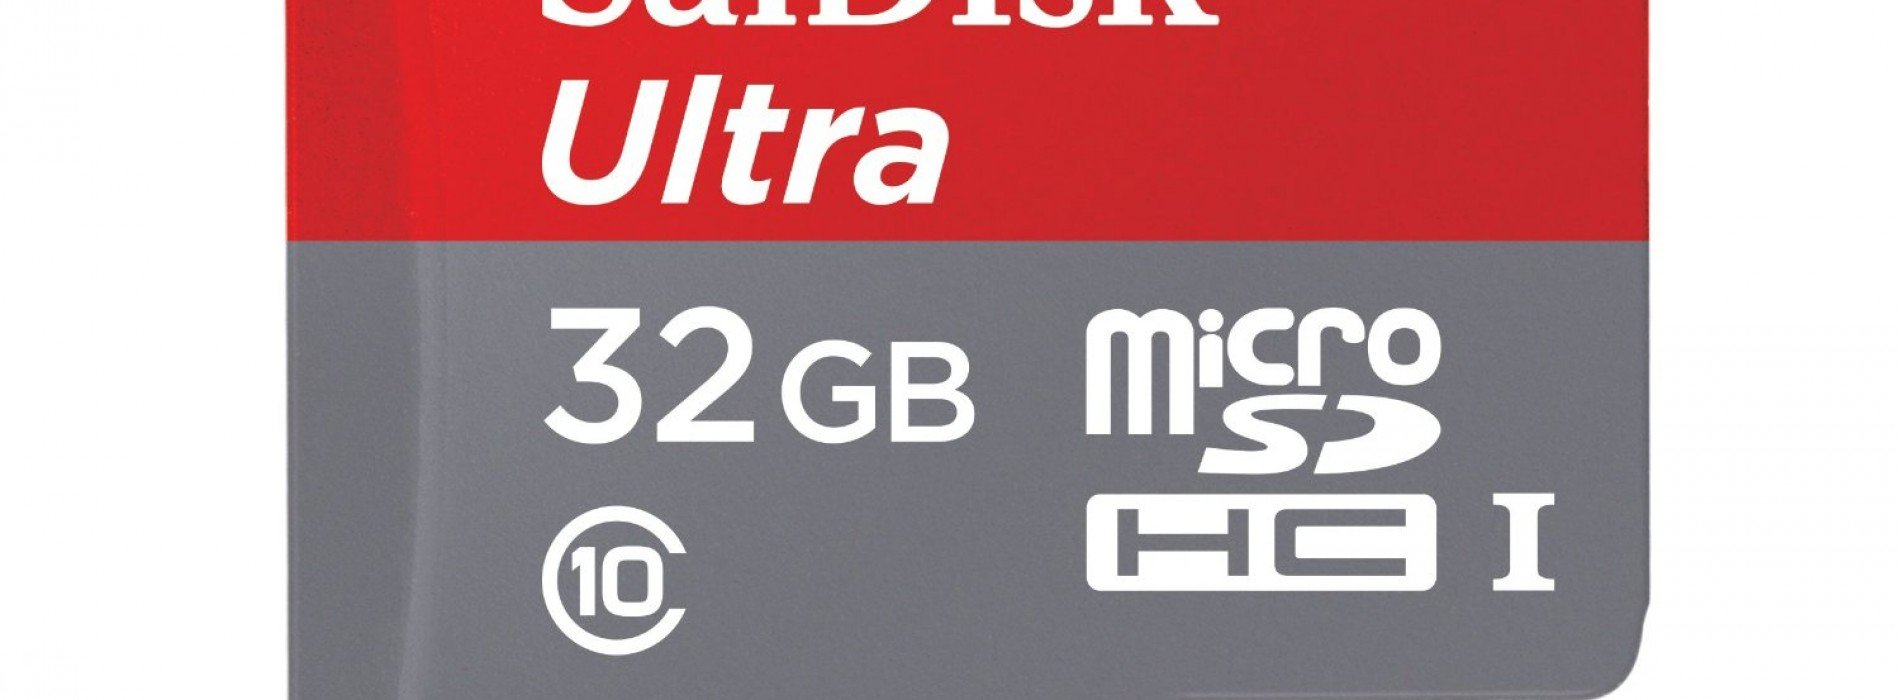 Accessory of the Day: SanDisk 32GB MicroSDHC Card $18.65